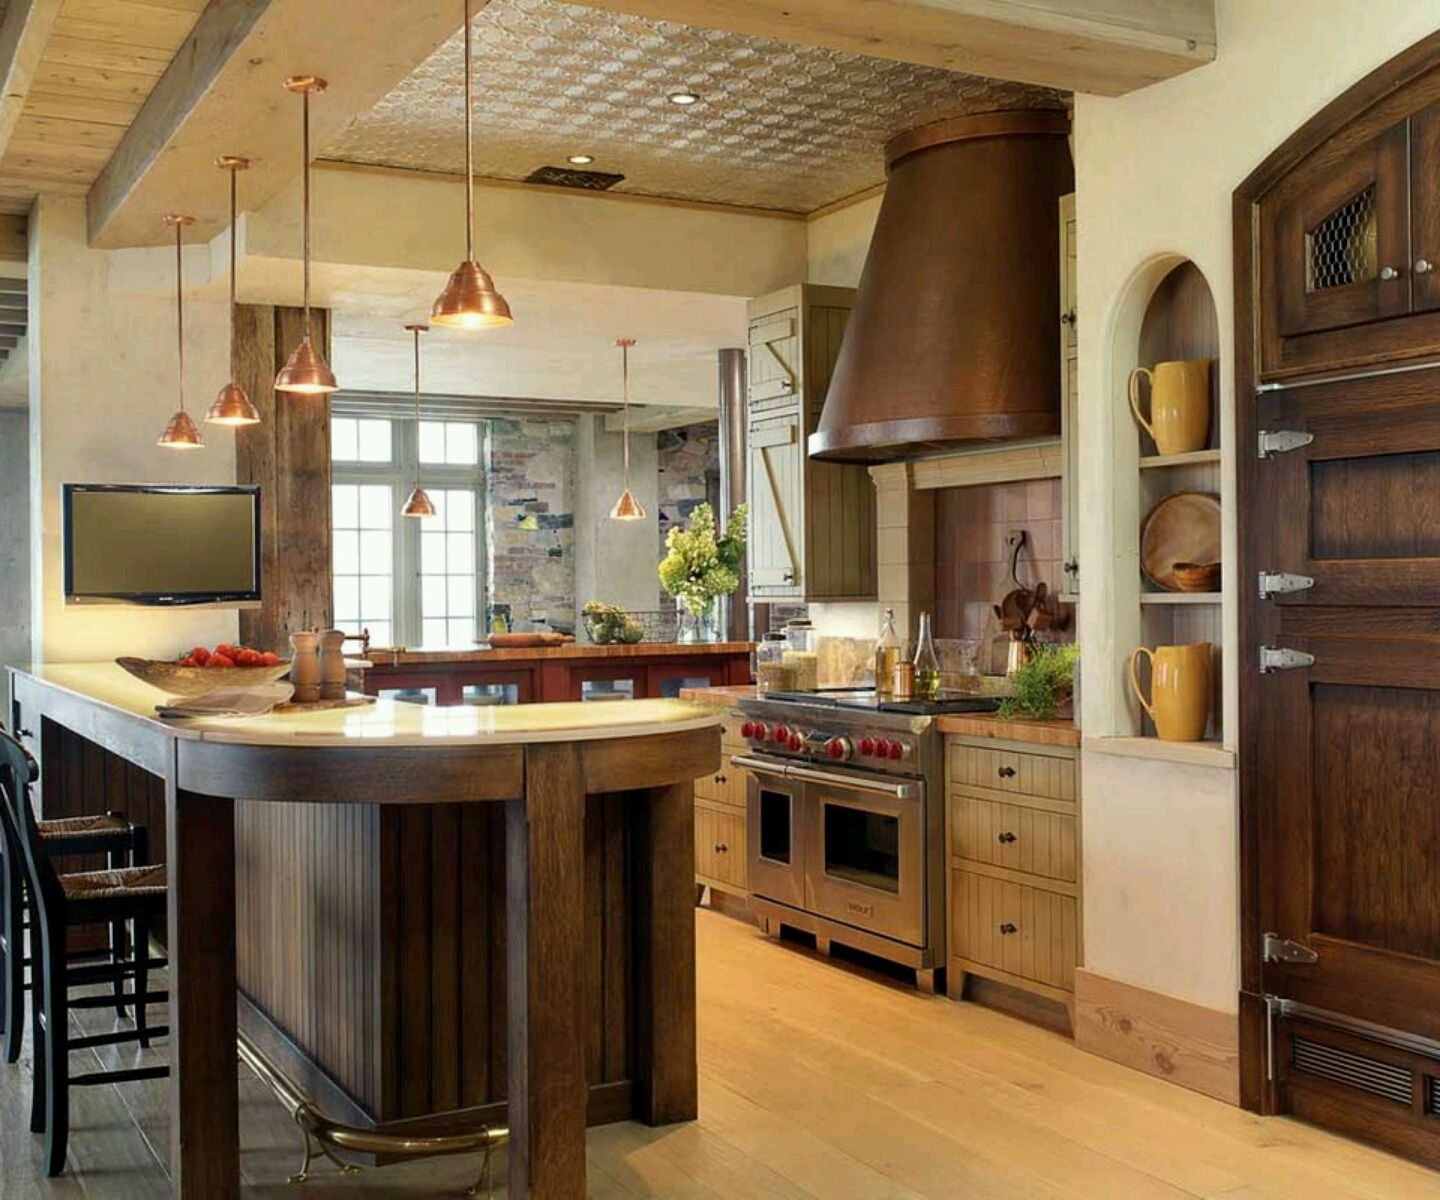 kitchen cabinet designs modern home kitchen cabinet designs ideas - New Home Kitchen Ideas